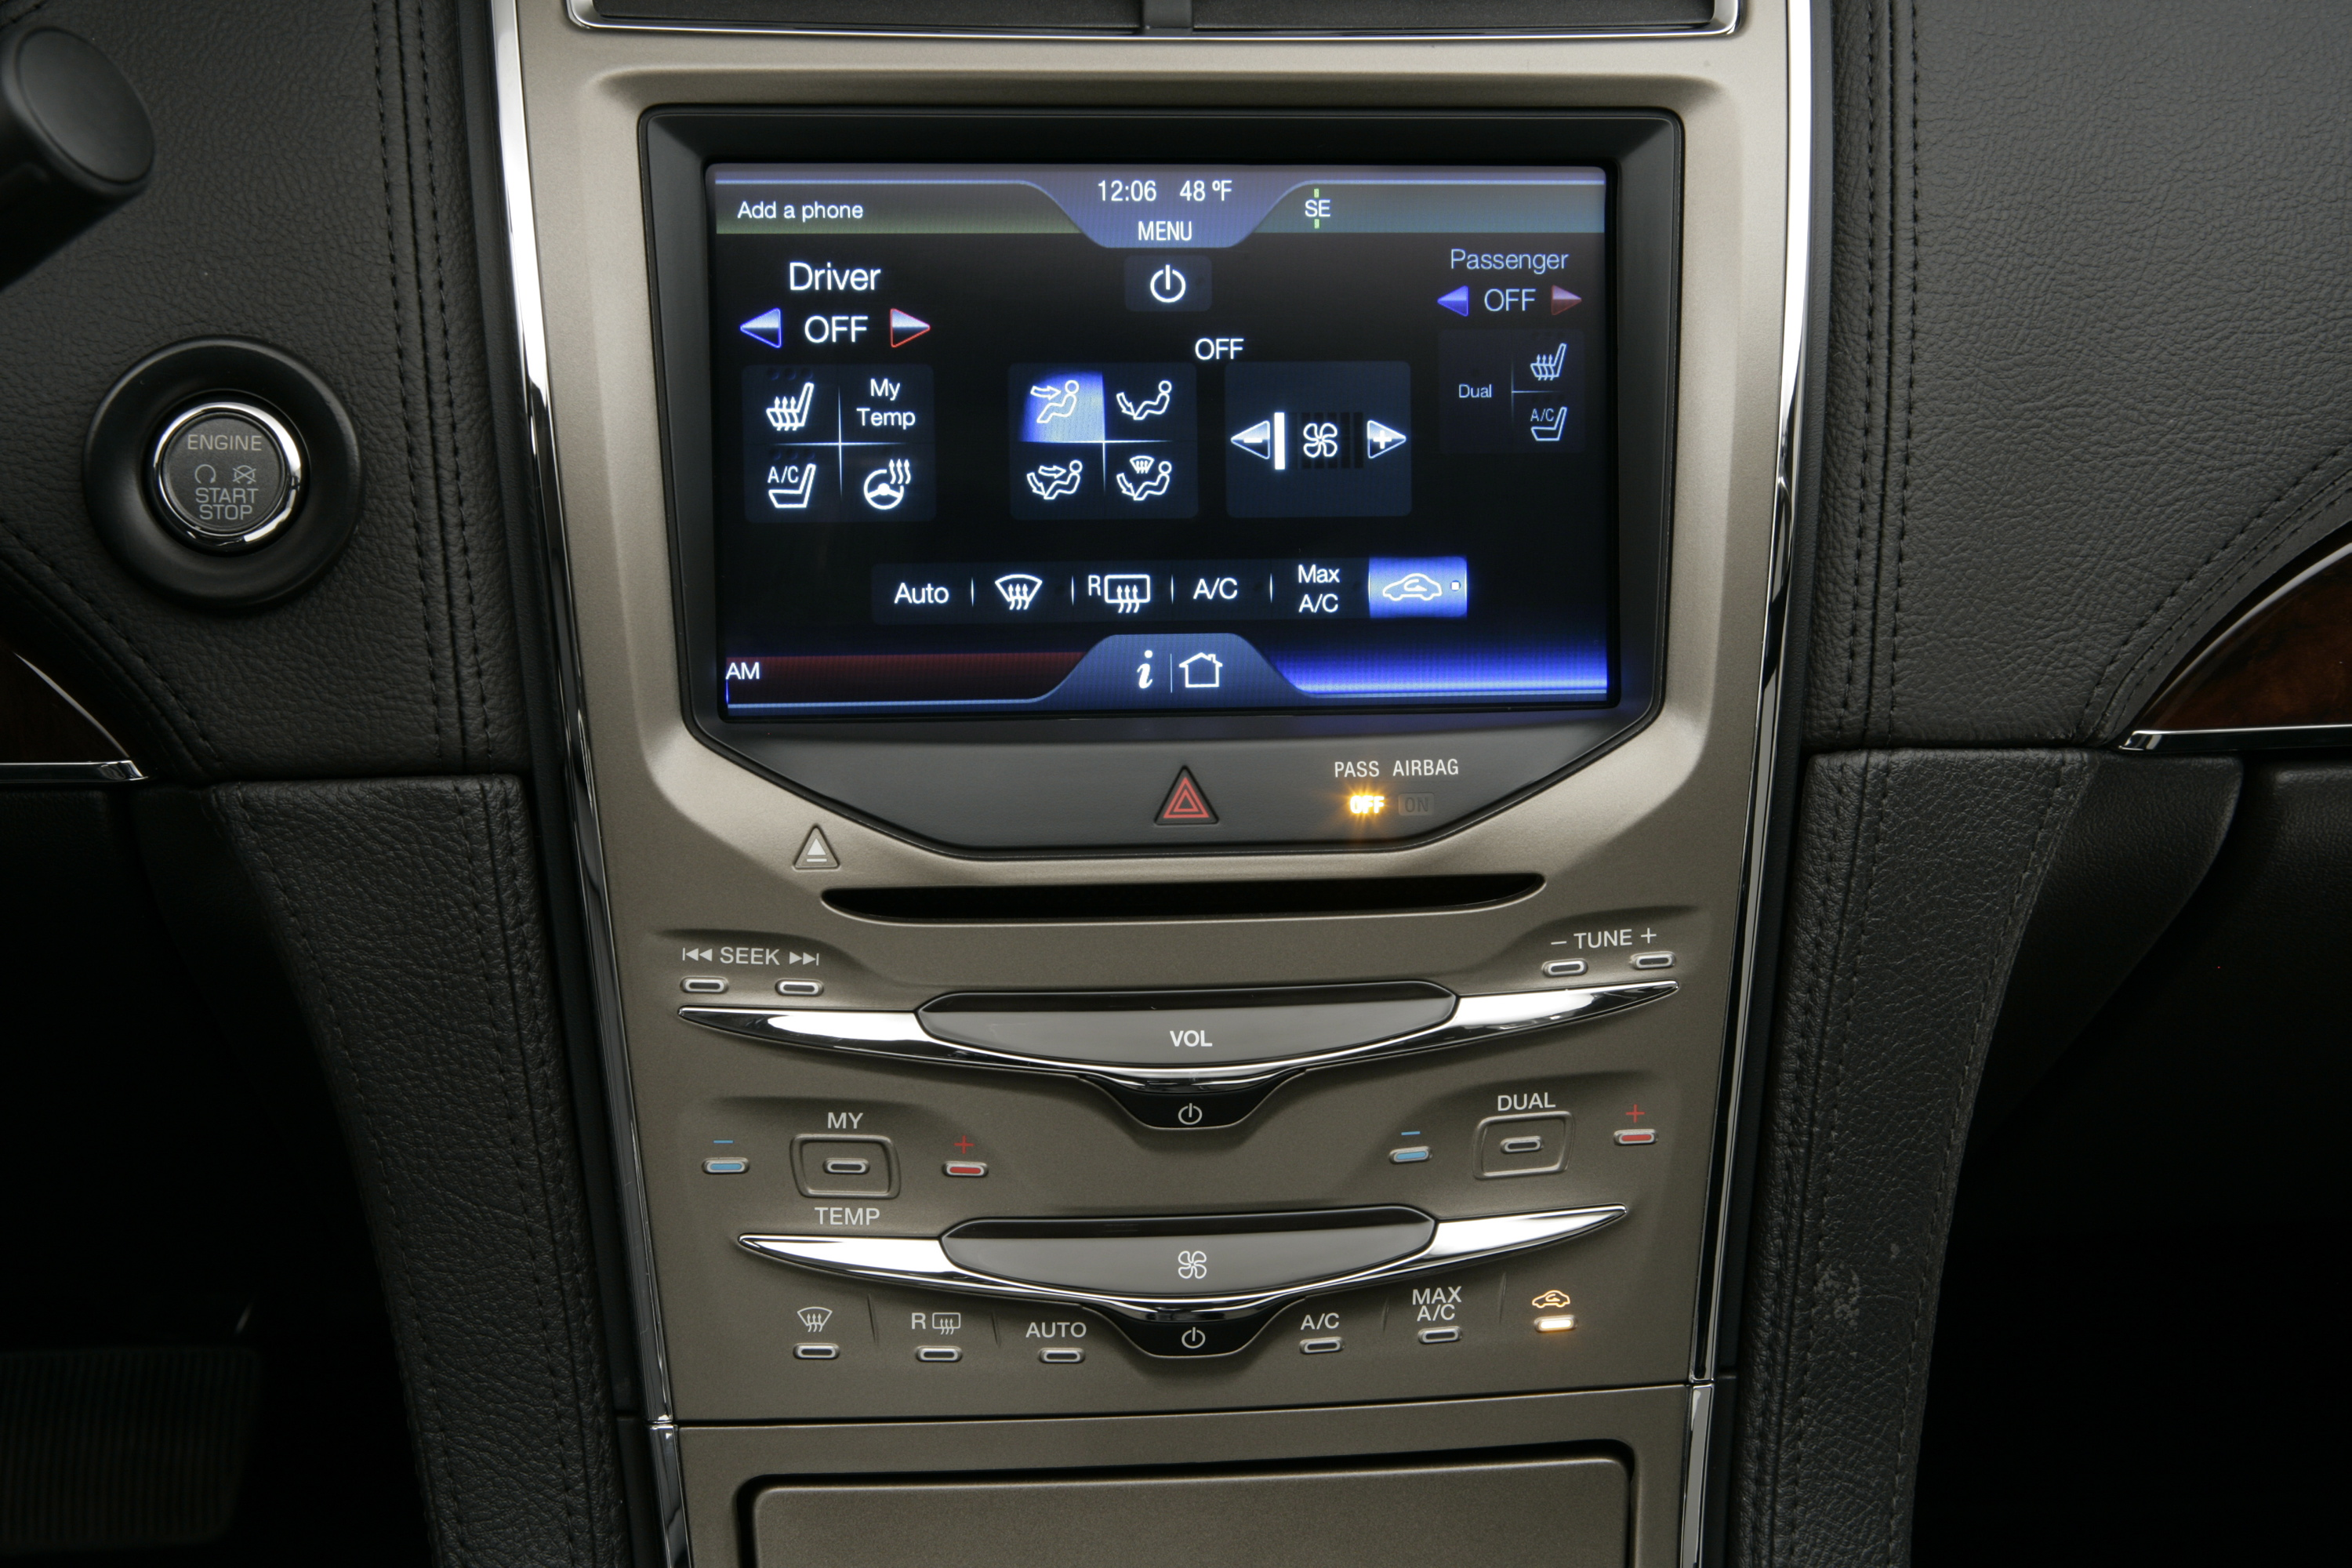 com acarisnotarefrigerator theme this the label of a todd mkz bianco lincoln interior s tag blog mkc center stage black with package